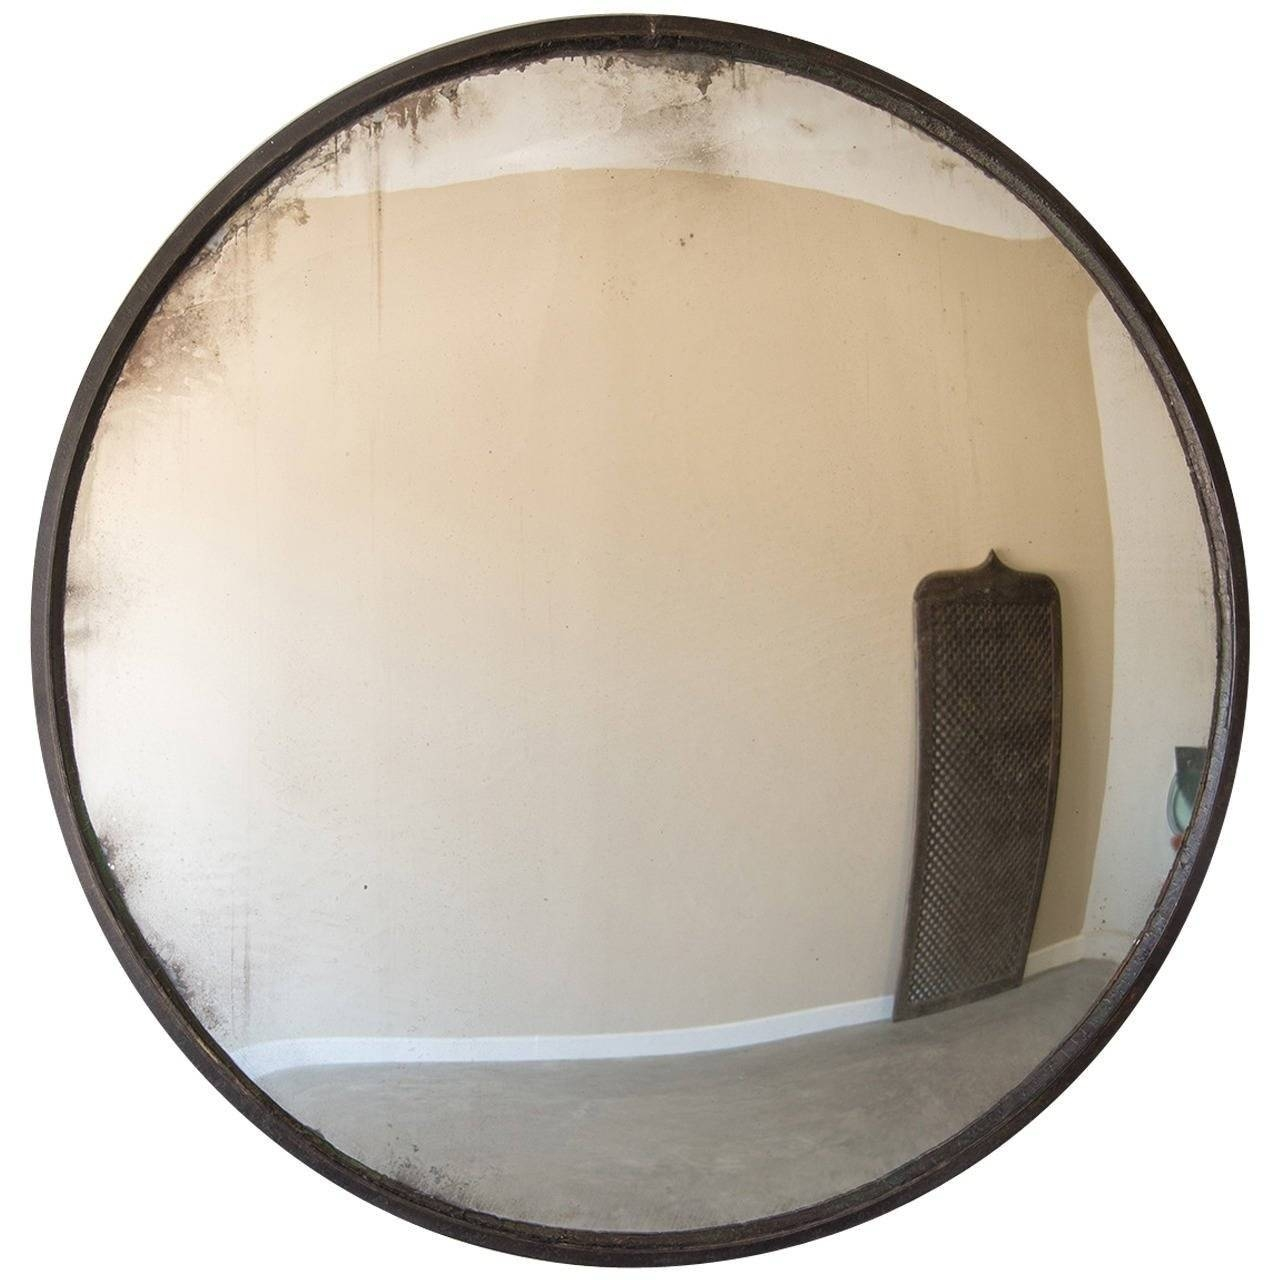 Enormous Industrial Iron Frame Convex Mirror, France Circa 1940 with regard to Round Convex Mirrors (Image 11 of 25)